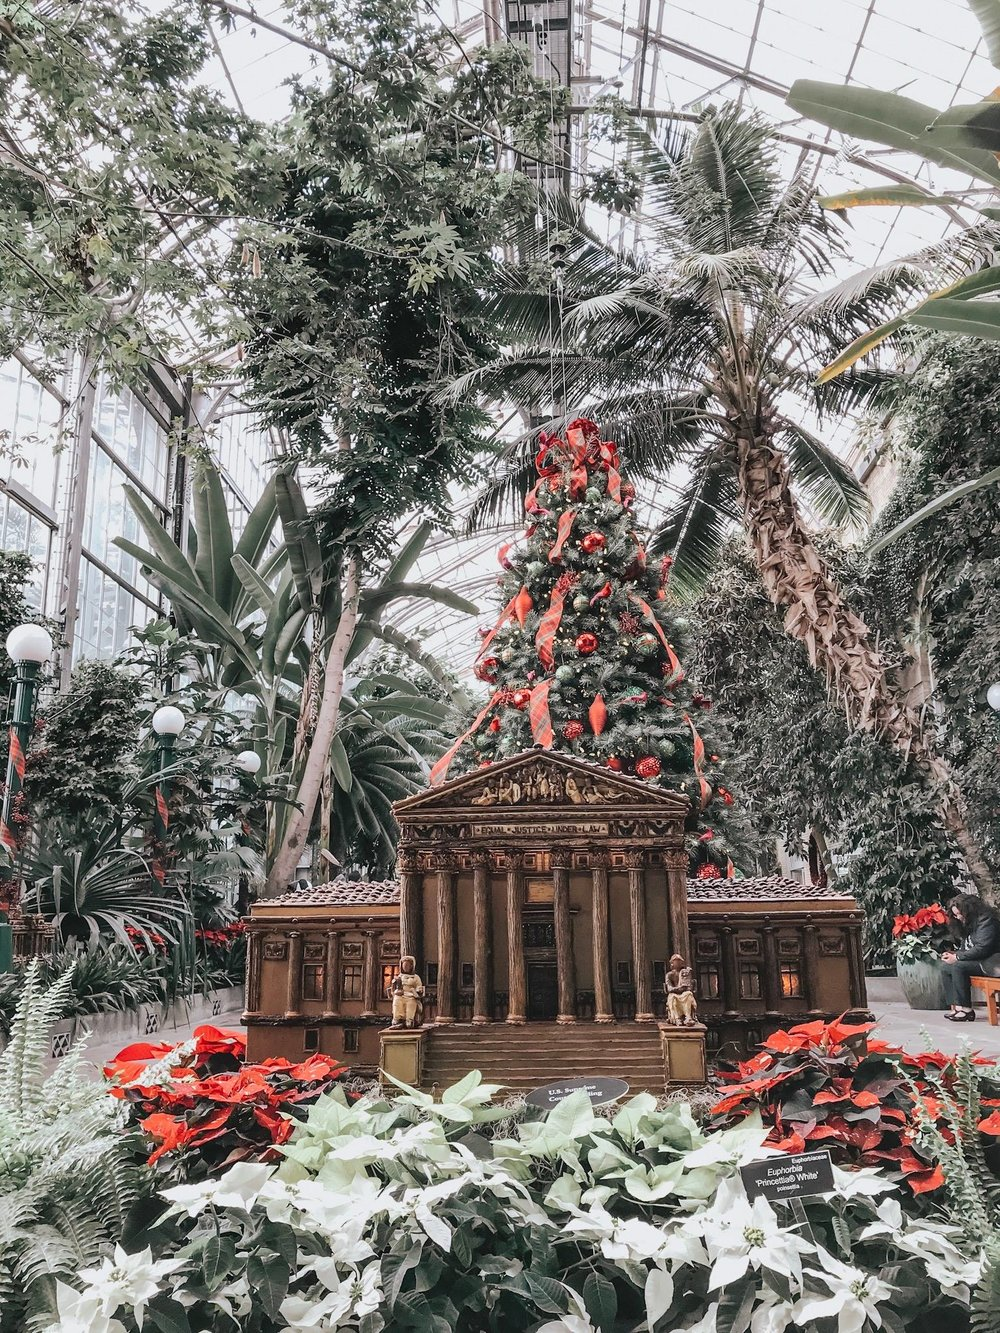 The Botanical Gardens at Chirstmas is unreal